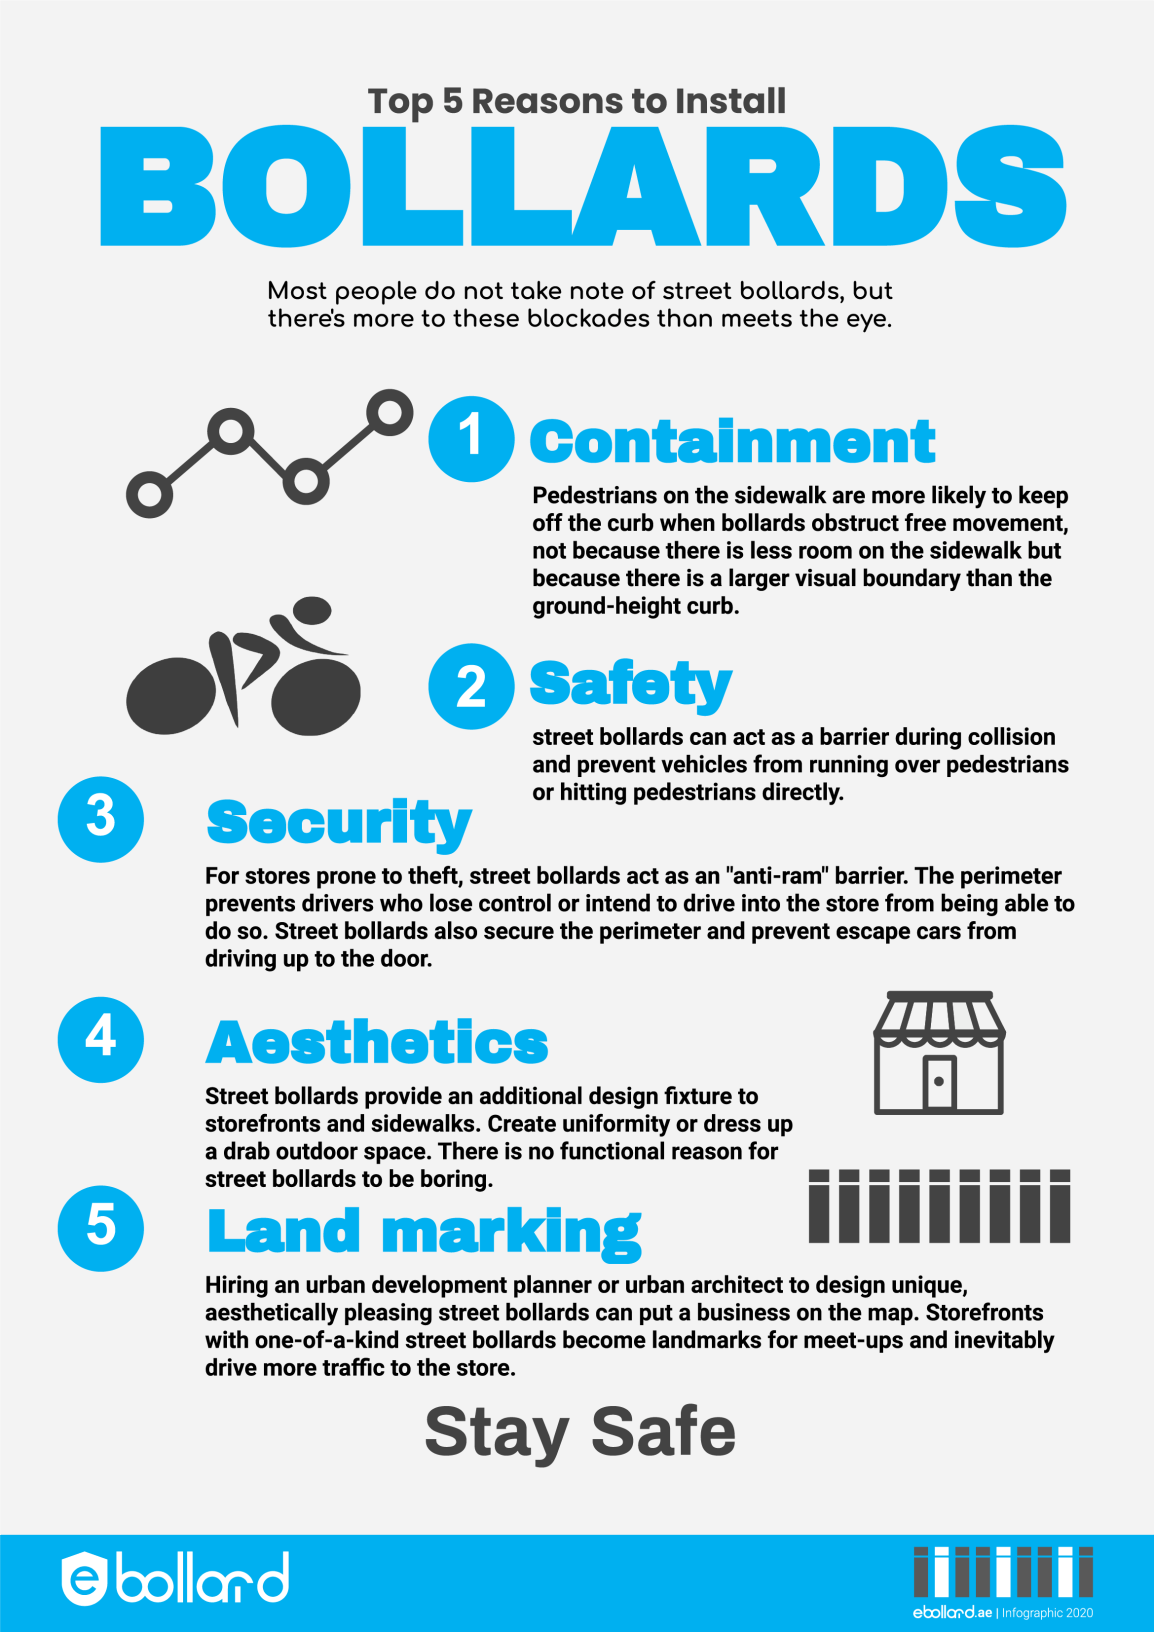 5 Reasons for Bollards Infographic